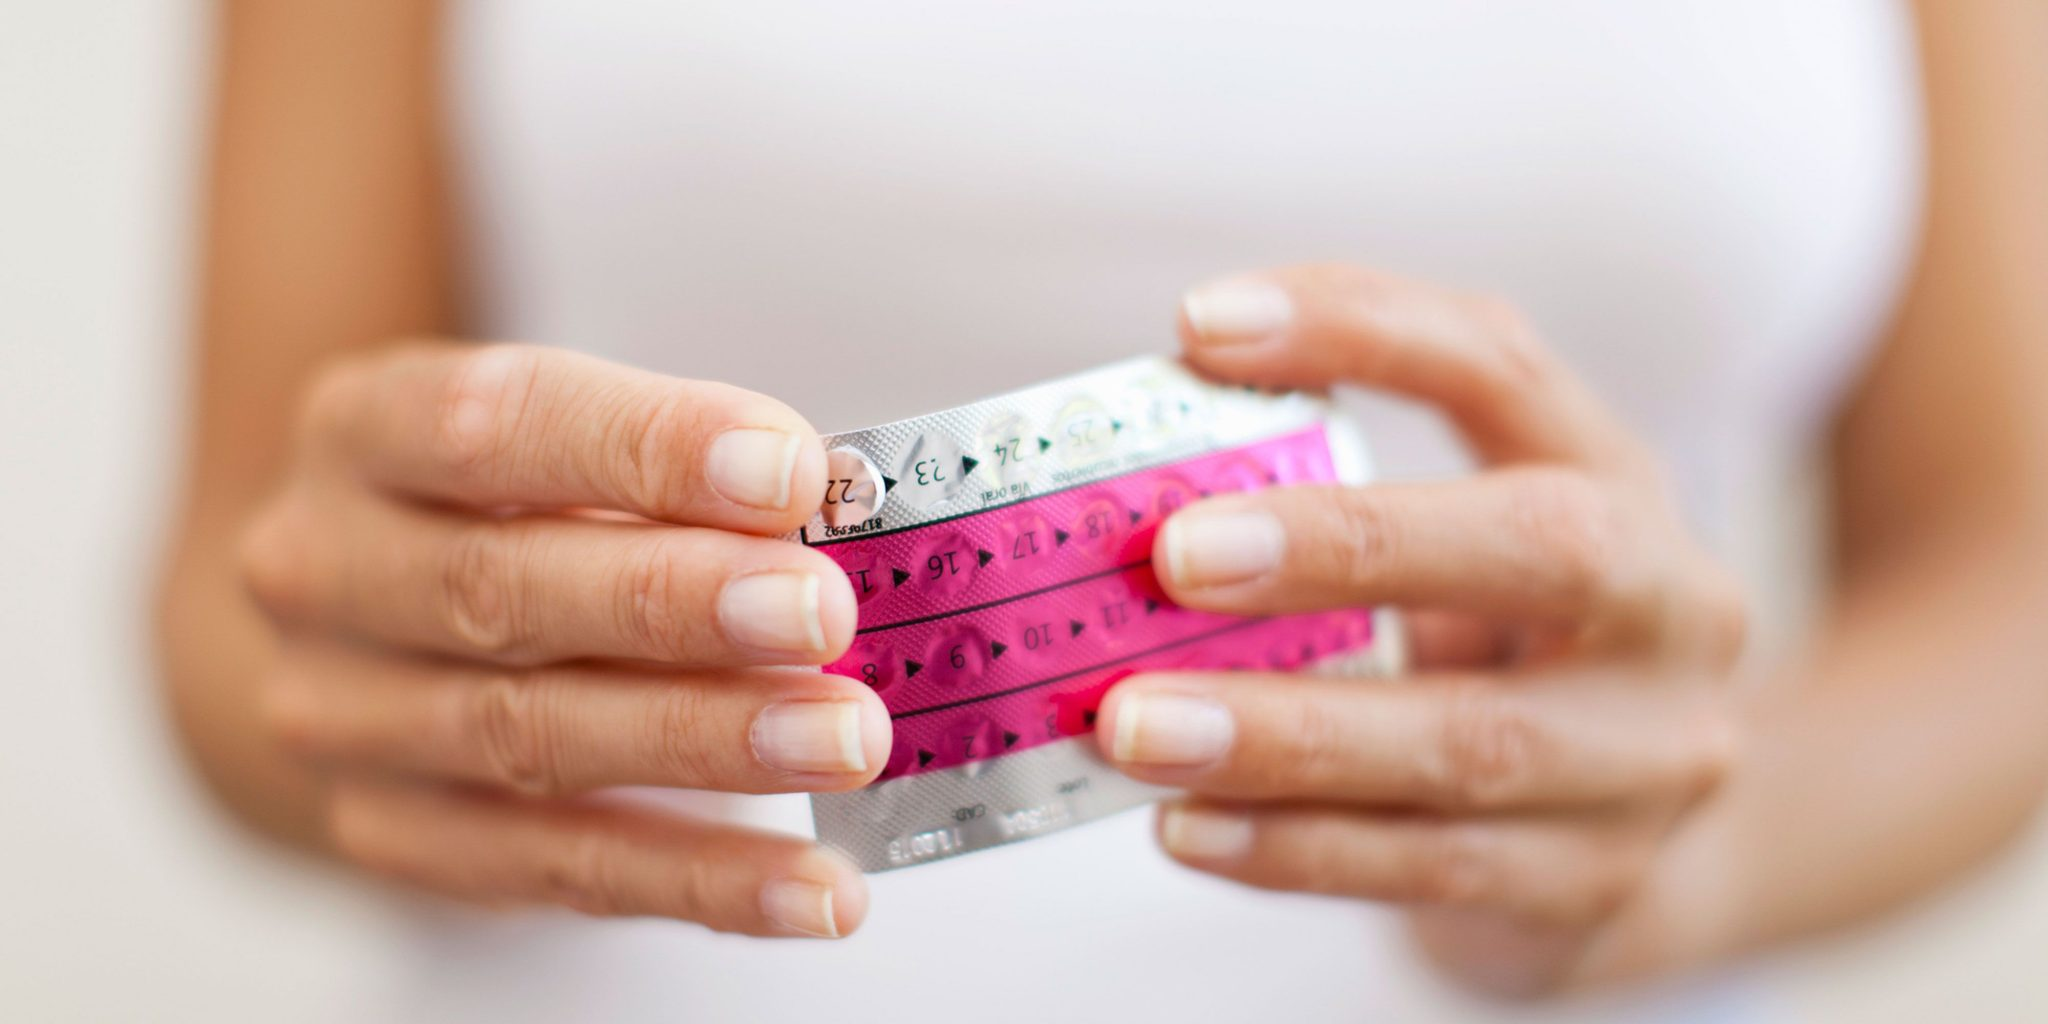 Woman's hands holding contraceptive pill packet